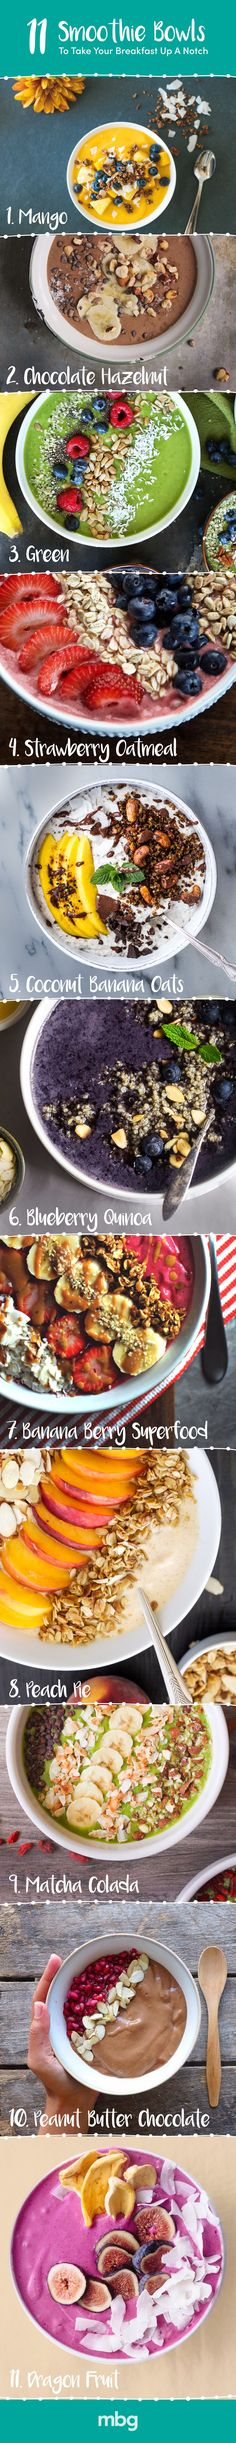 These smoothie bowls can completely transform your morning!